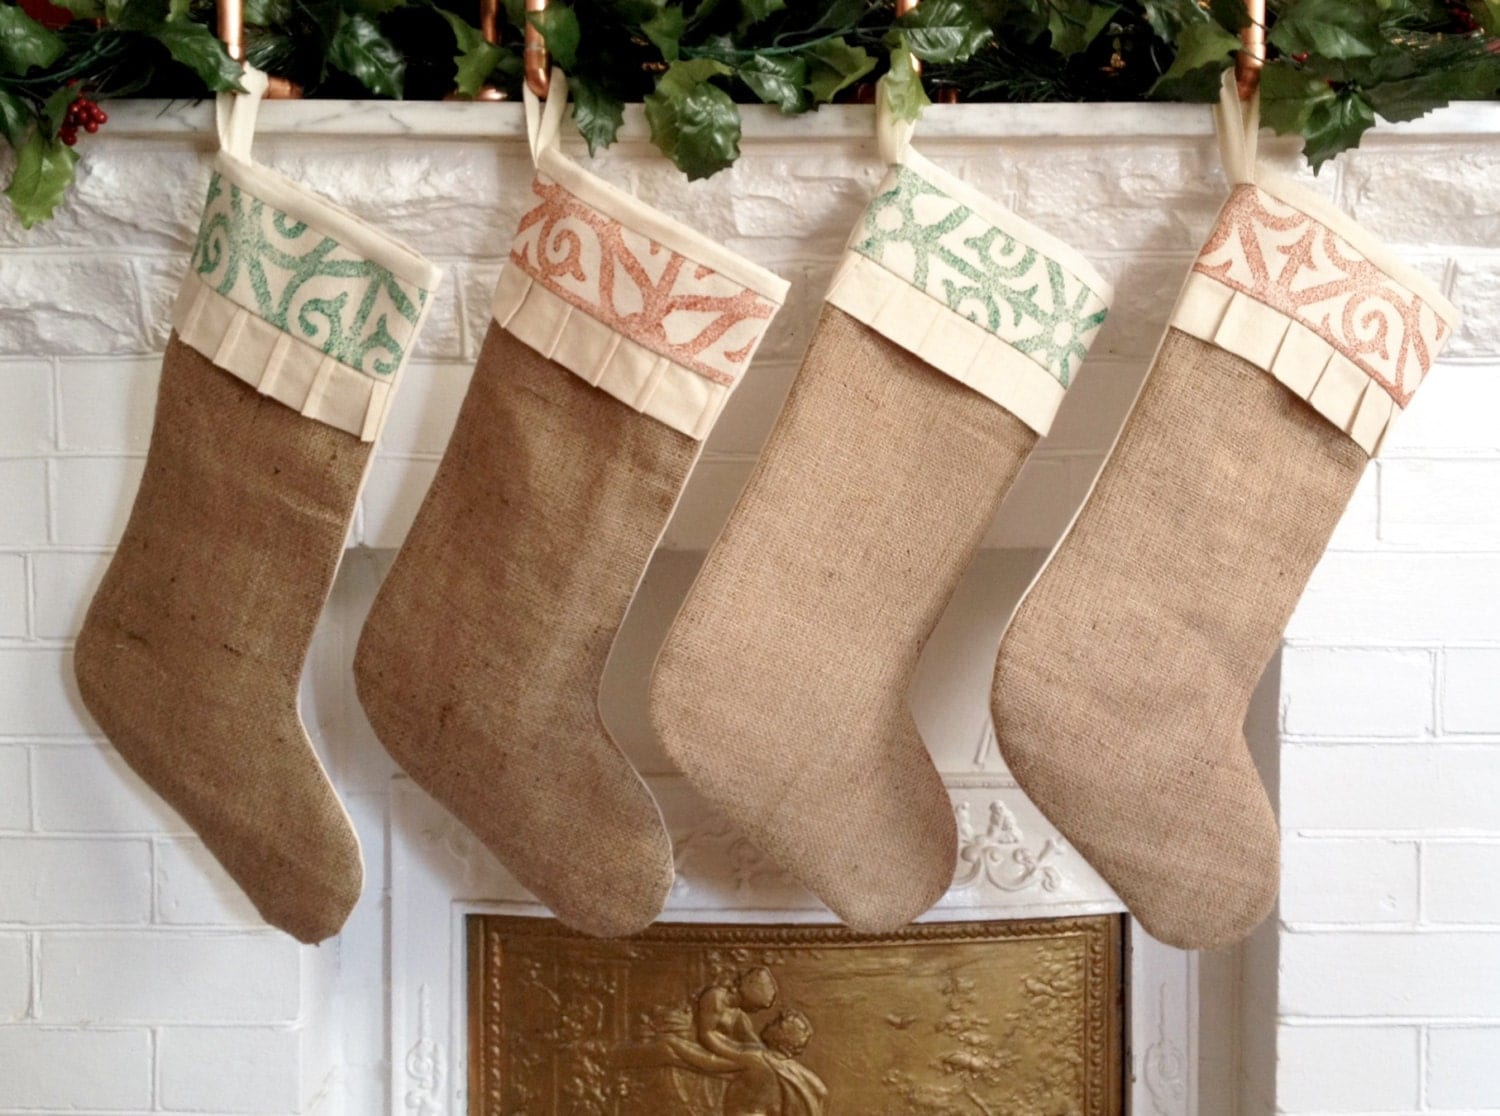 Add some country charm to your holiday décor with rustic Christmas stockings personalized with names, monograms and other custom details. Find designs that feature plaid, buffalo check, burlap, knits and other rustic styles. Create your own farmhouse country Christmas stockings at tiucalttoppey.gq